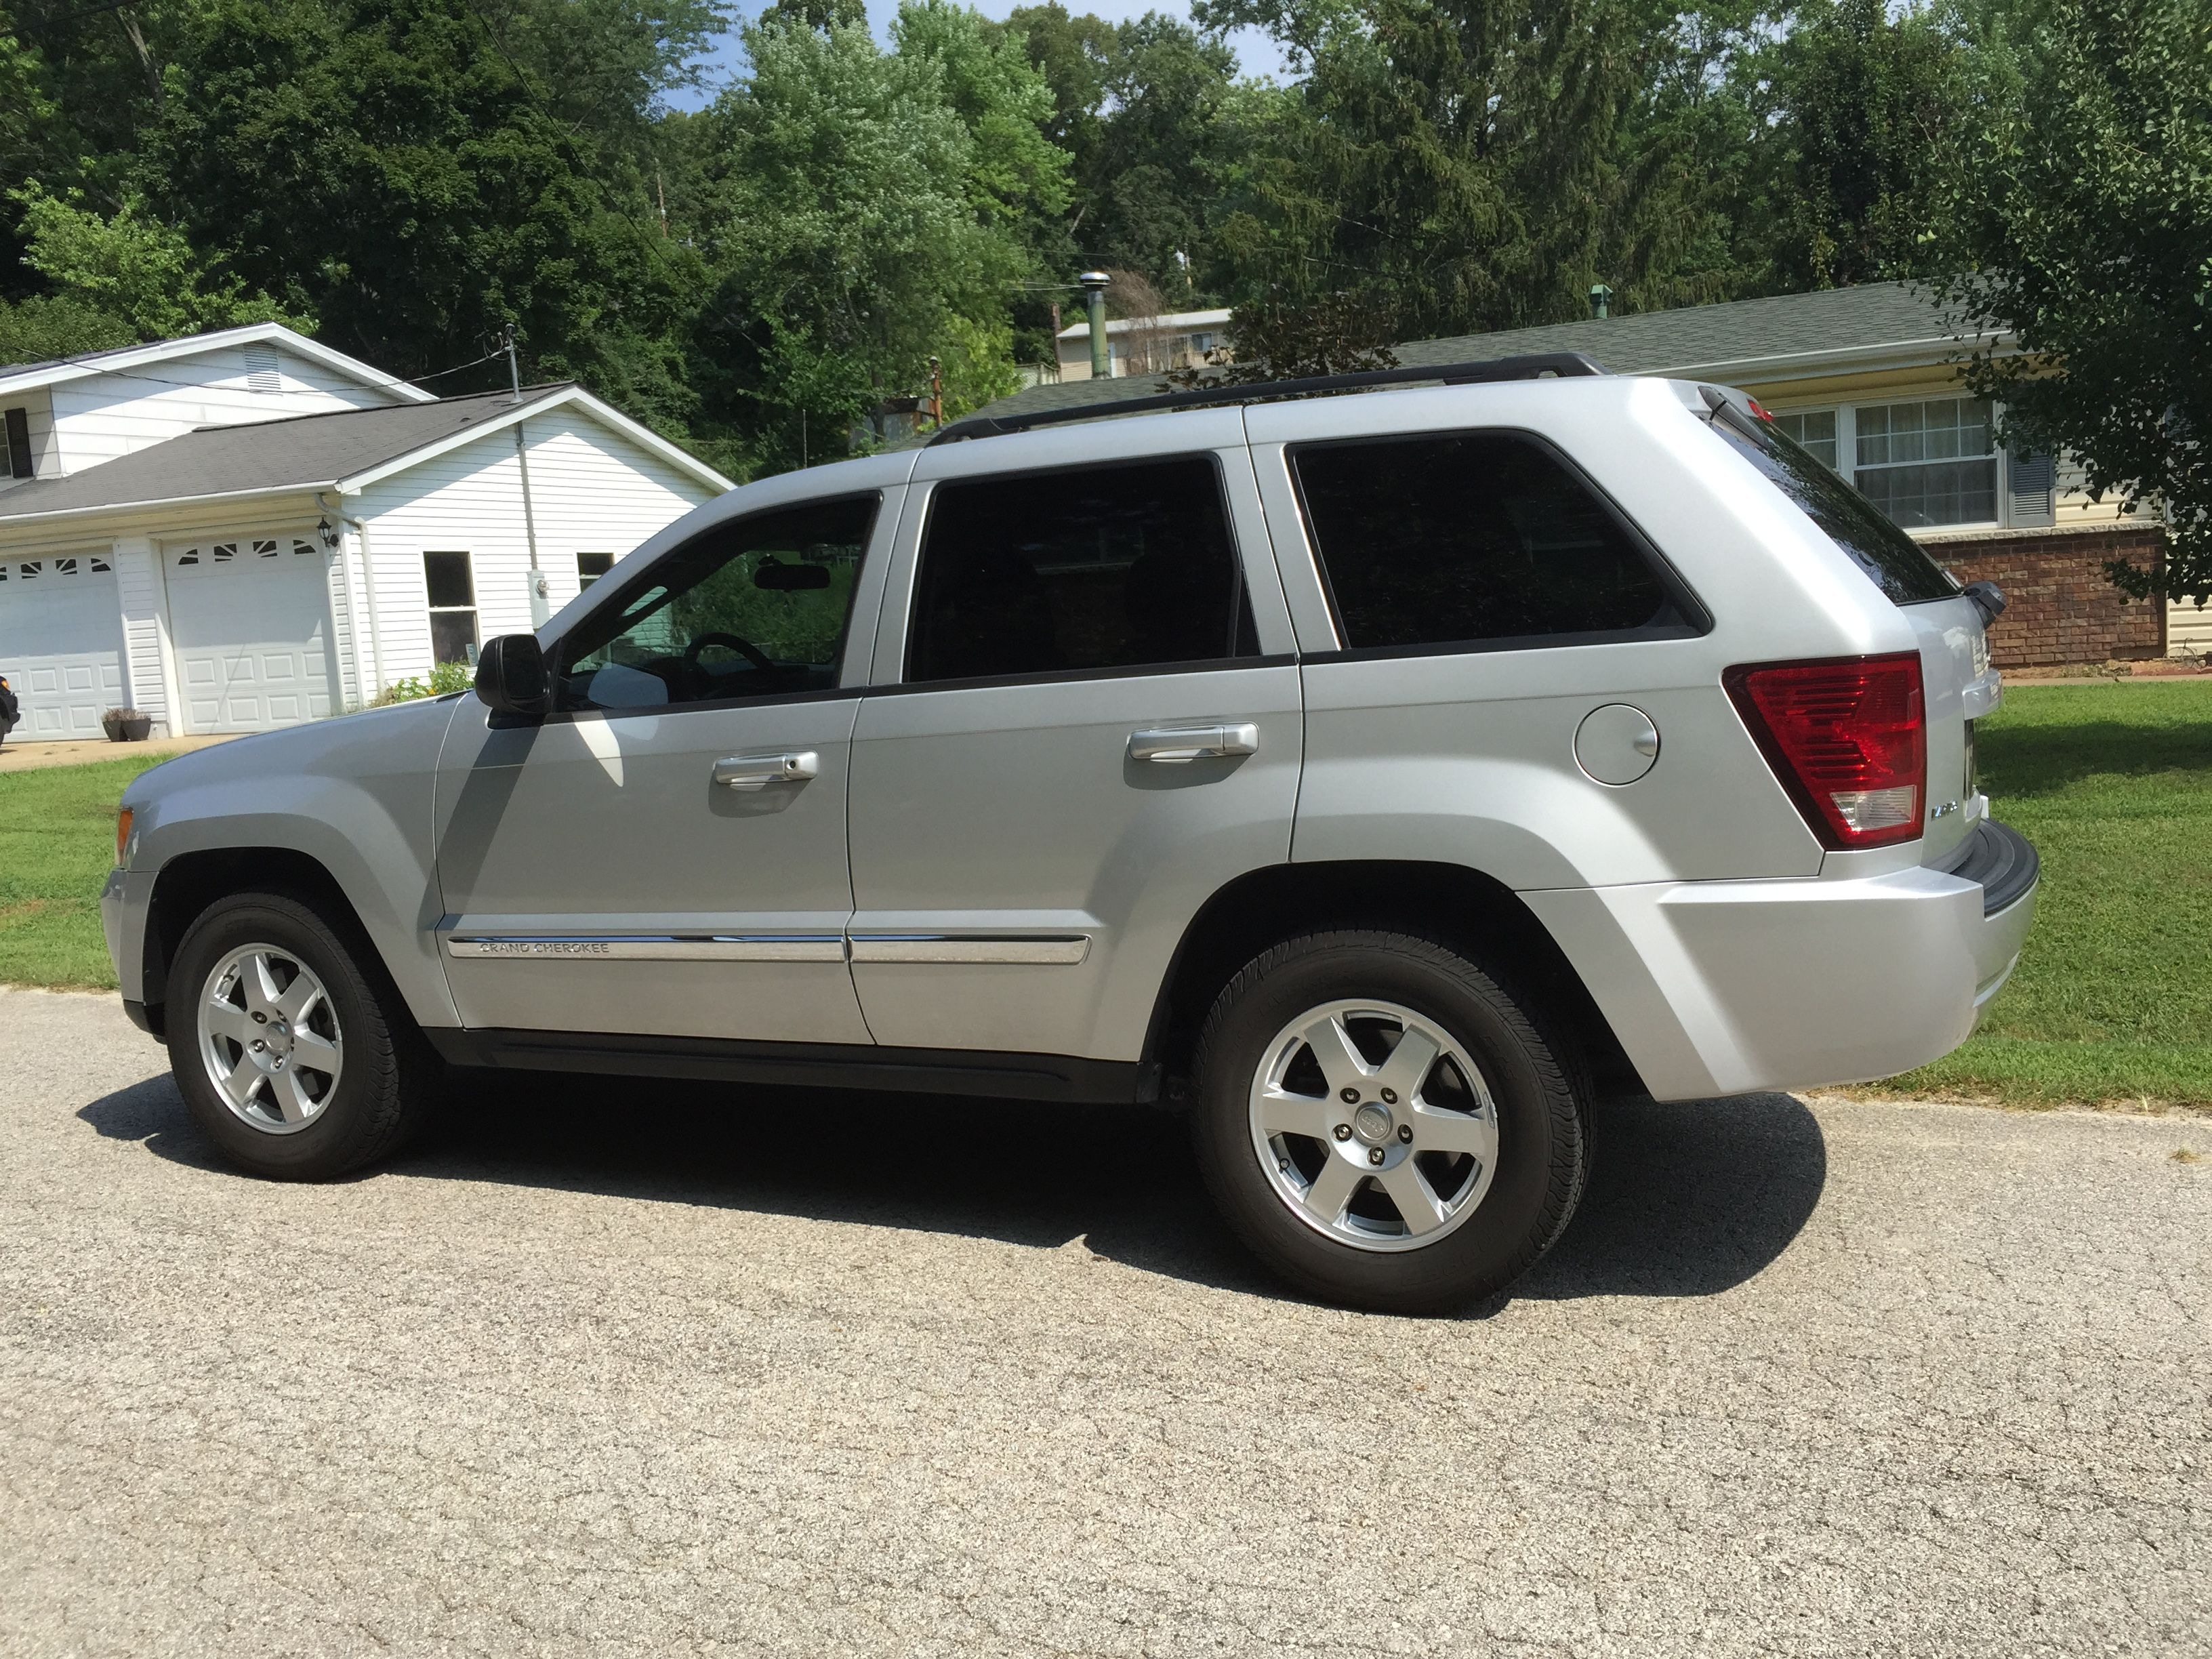 my 2010 jeep grand cherokee, 5 years old. 8-4-15 | 2010 jeep grand